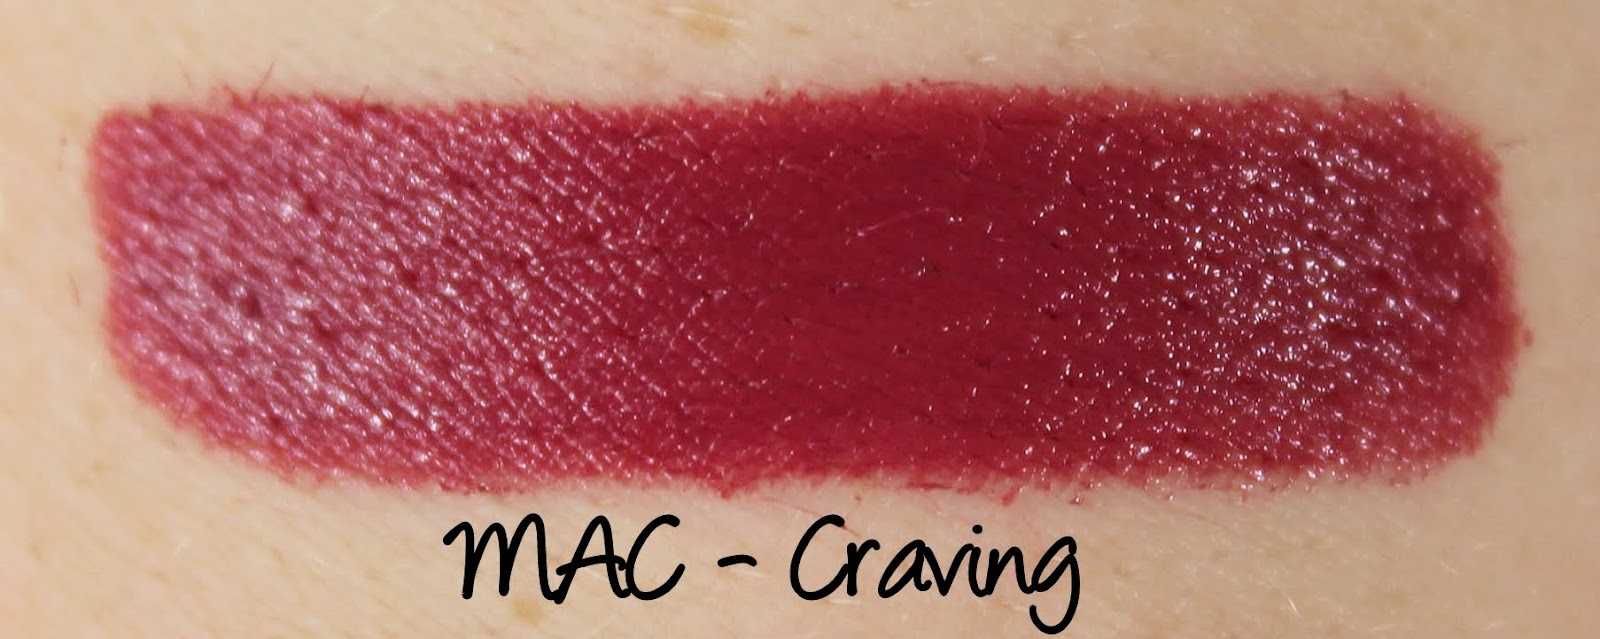 MAC Craving Lipstick Swatches & Review